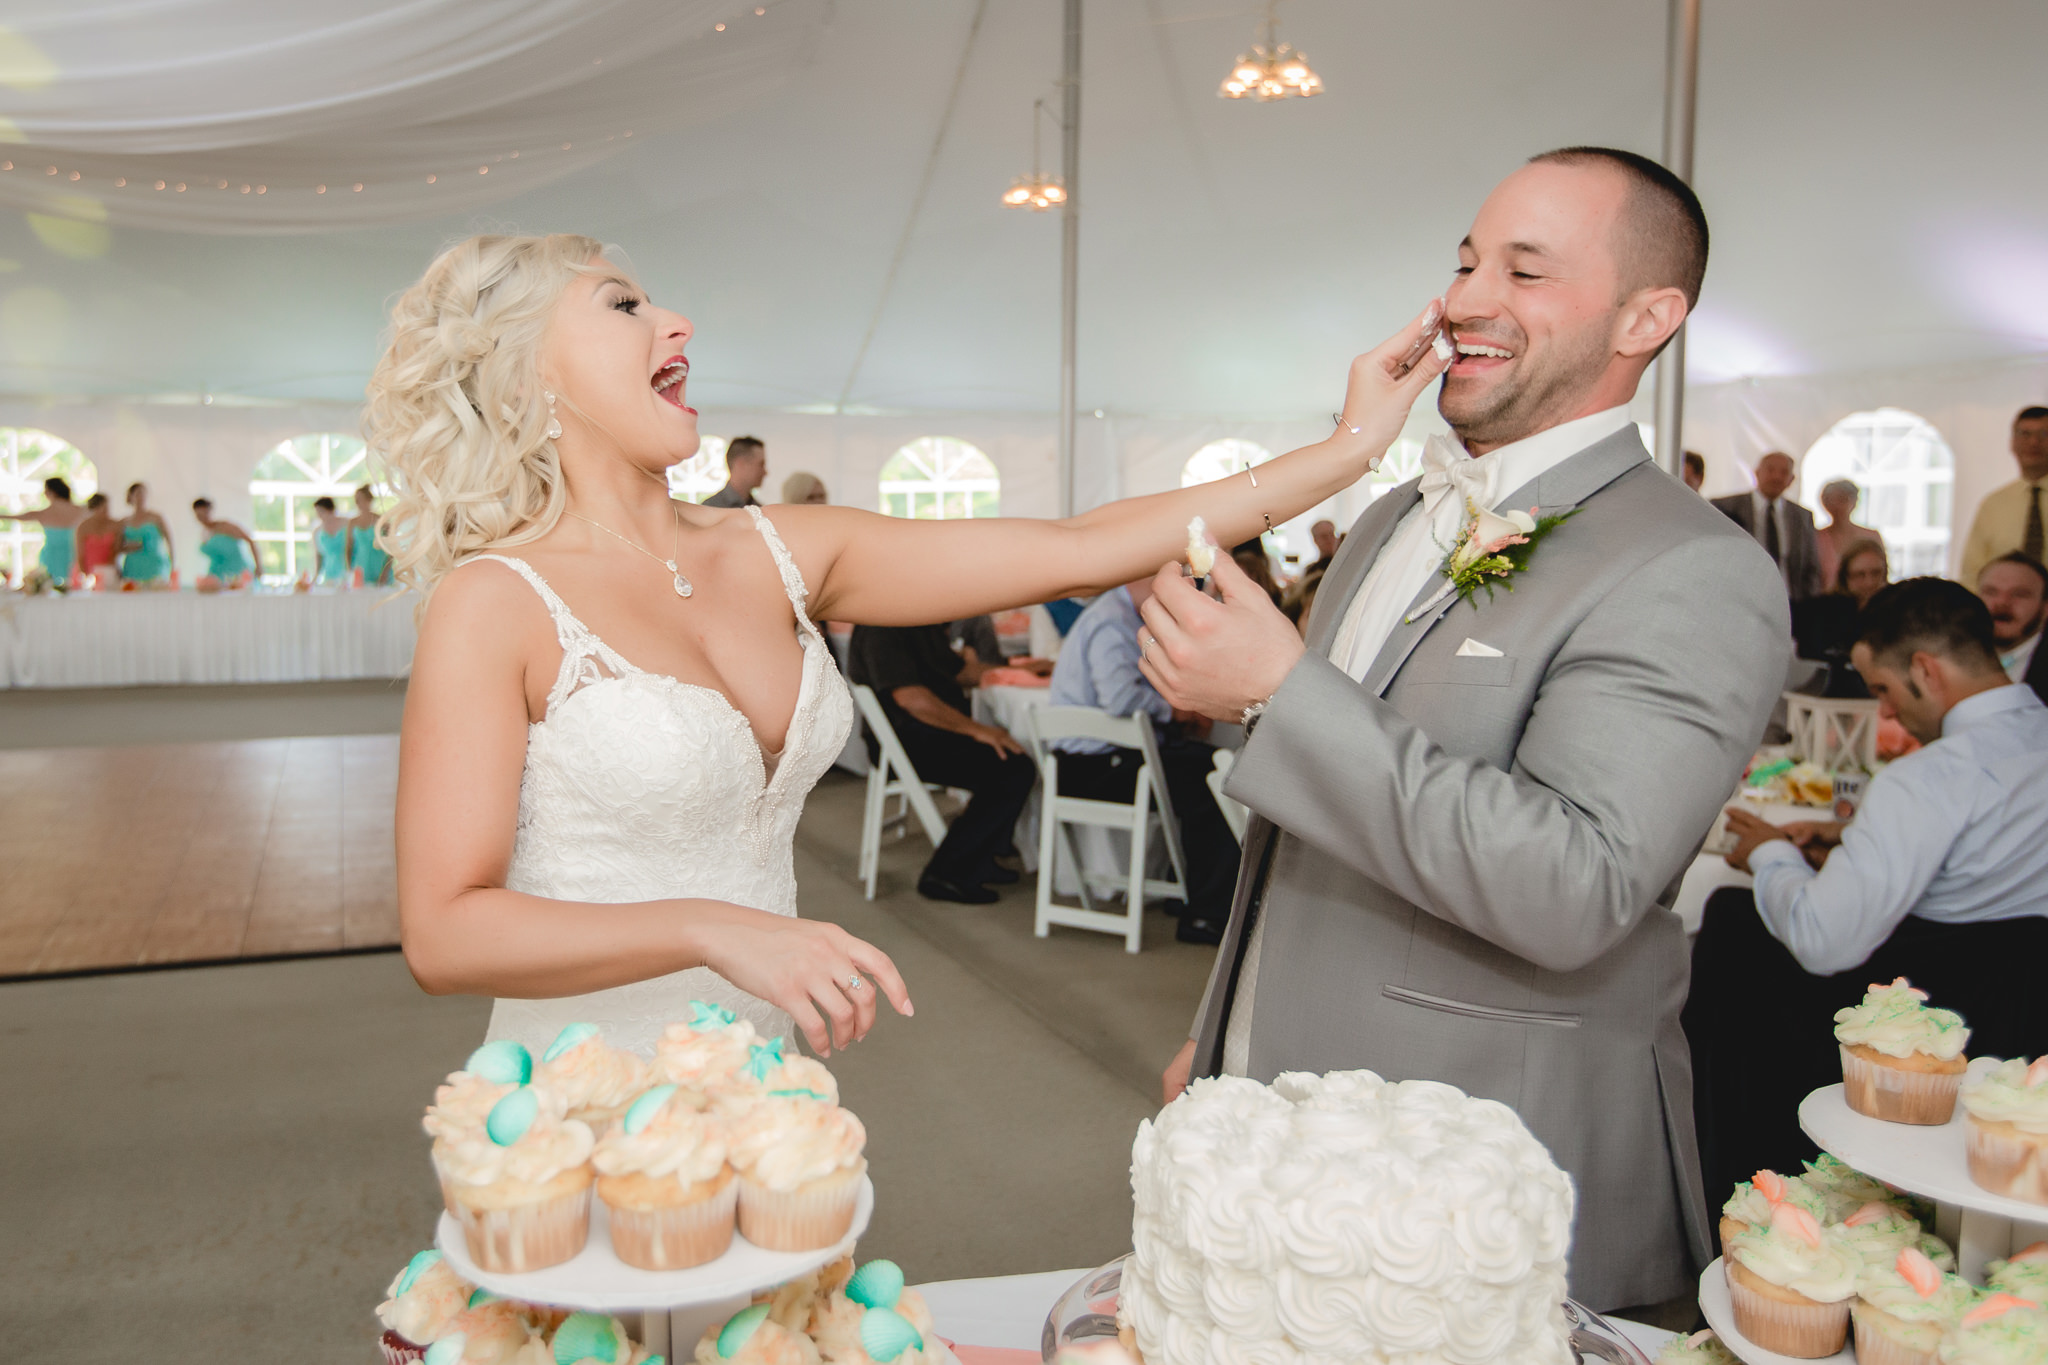 Bride smashes some icing into the groom's face